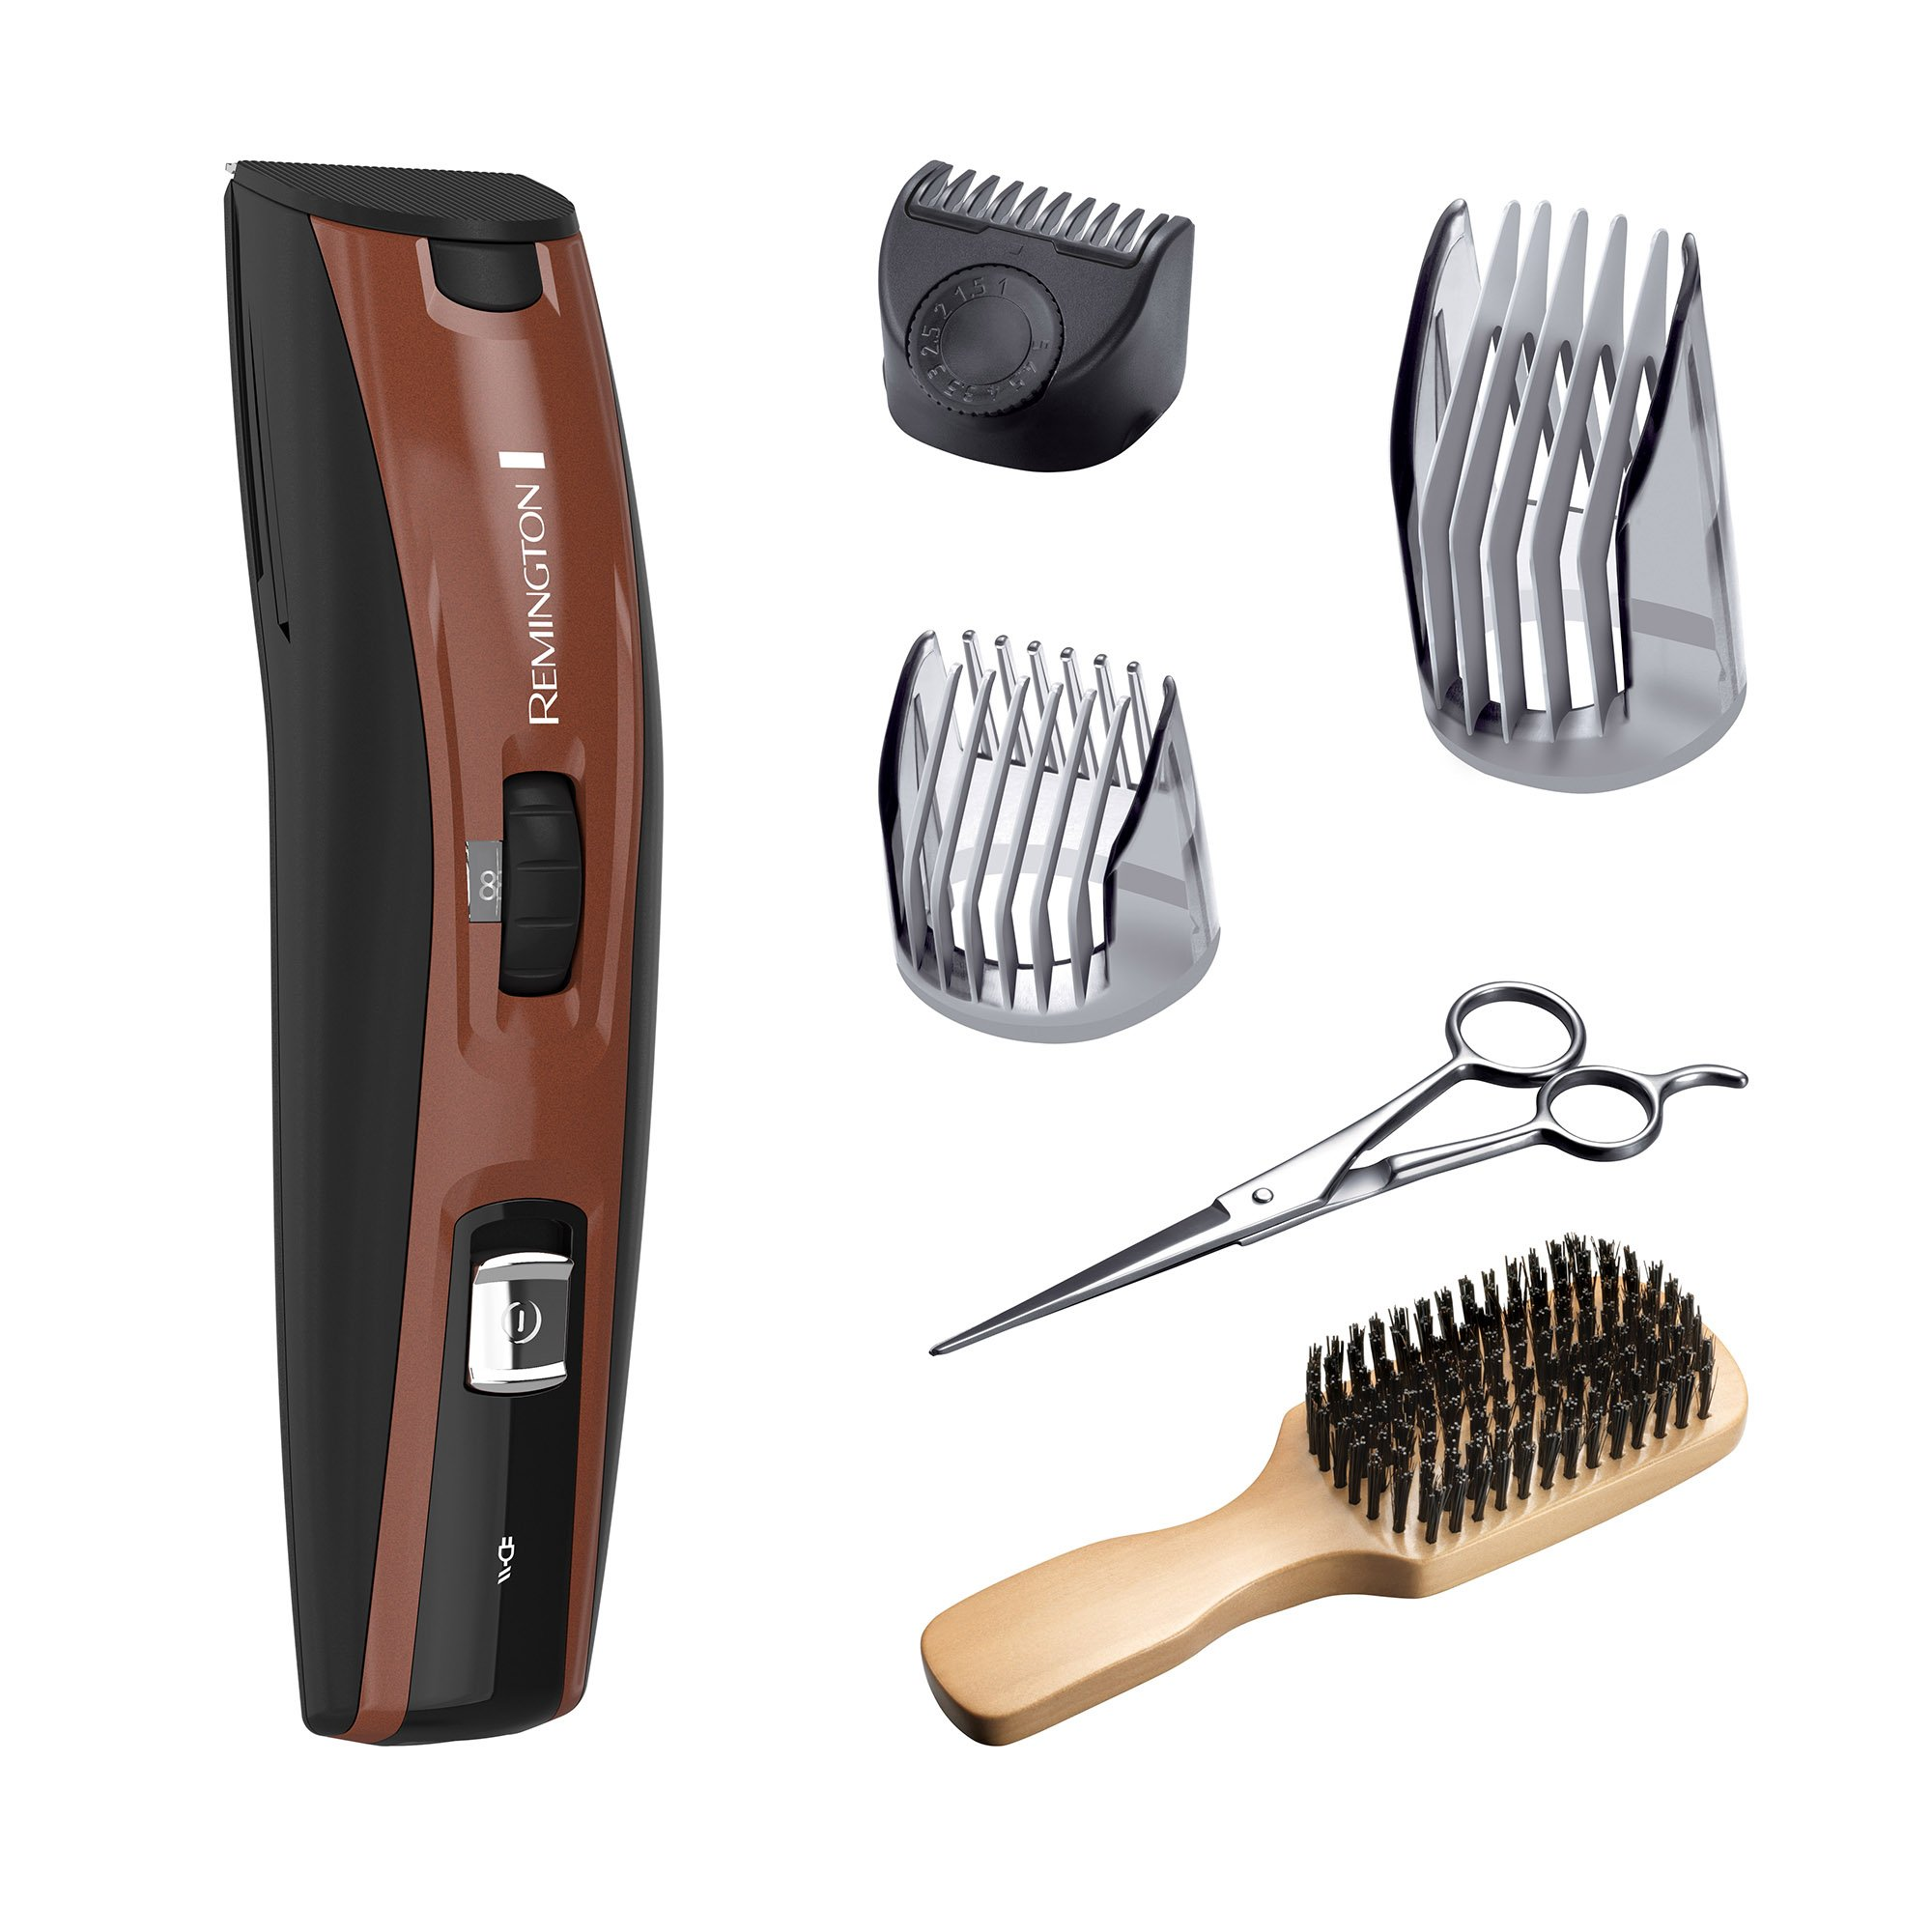 Remington MB4045A The Beardsman Beard Boss Full Beard Kit with Titanium-Coated Blades, Copper by Remington